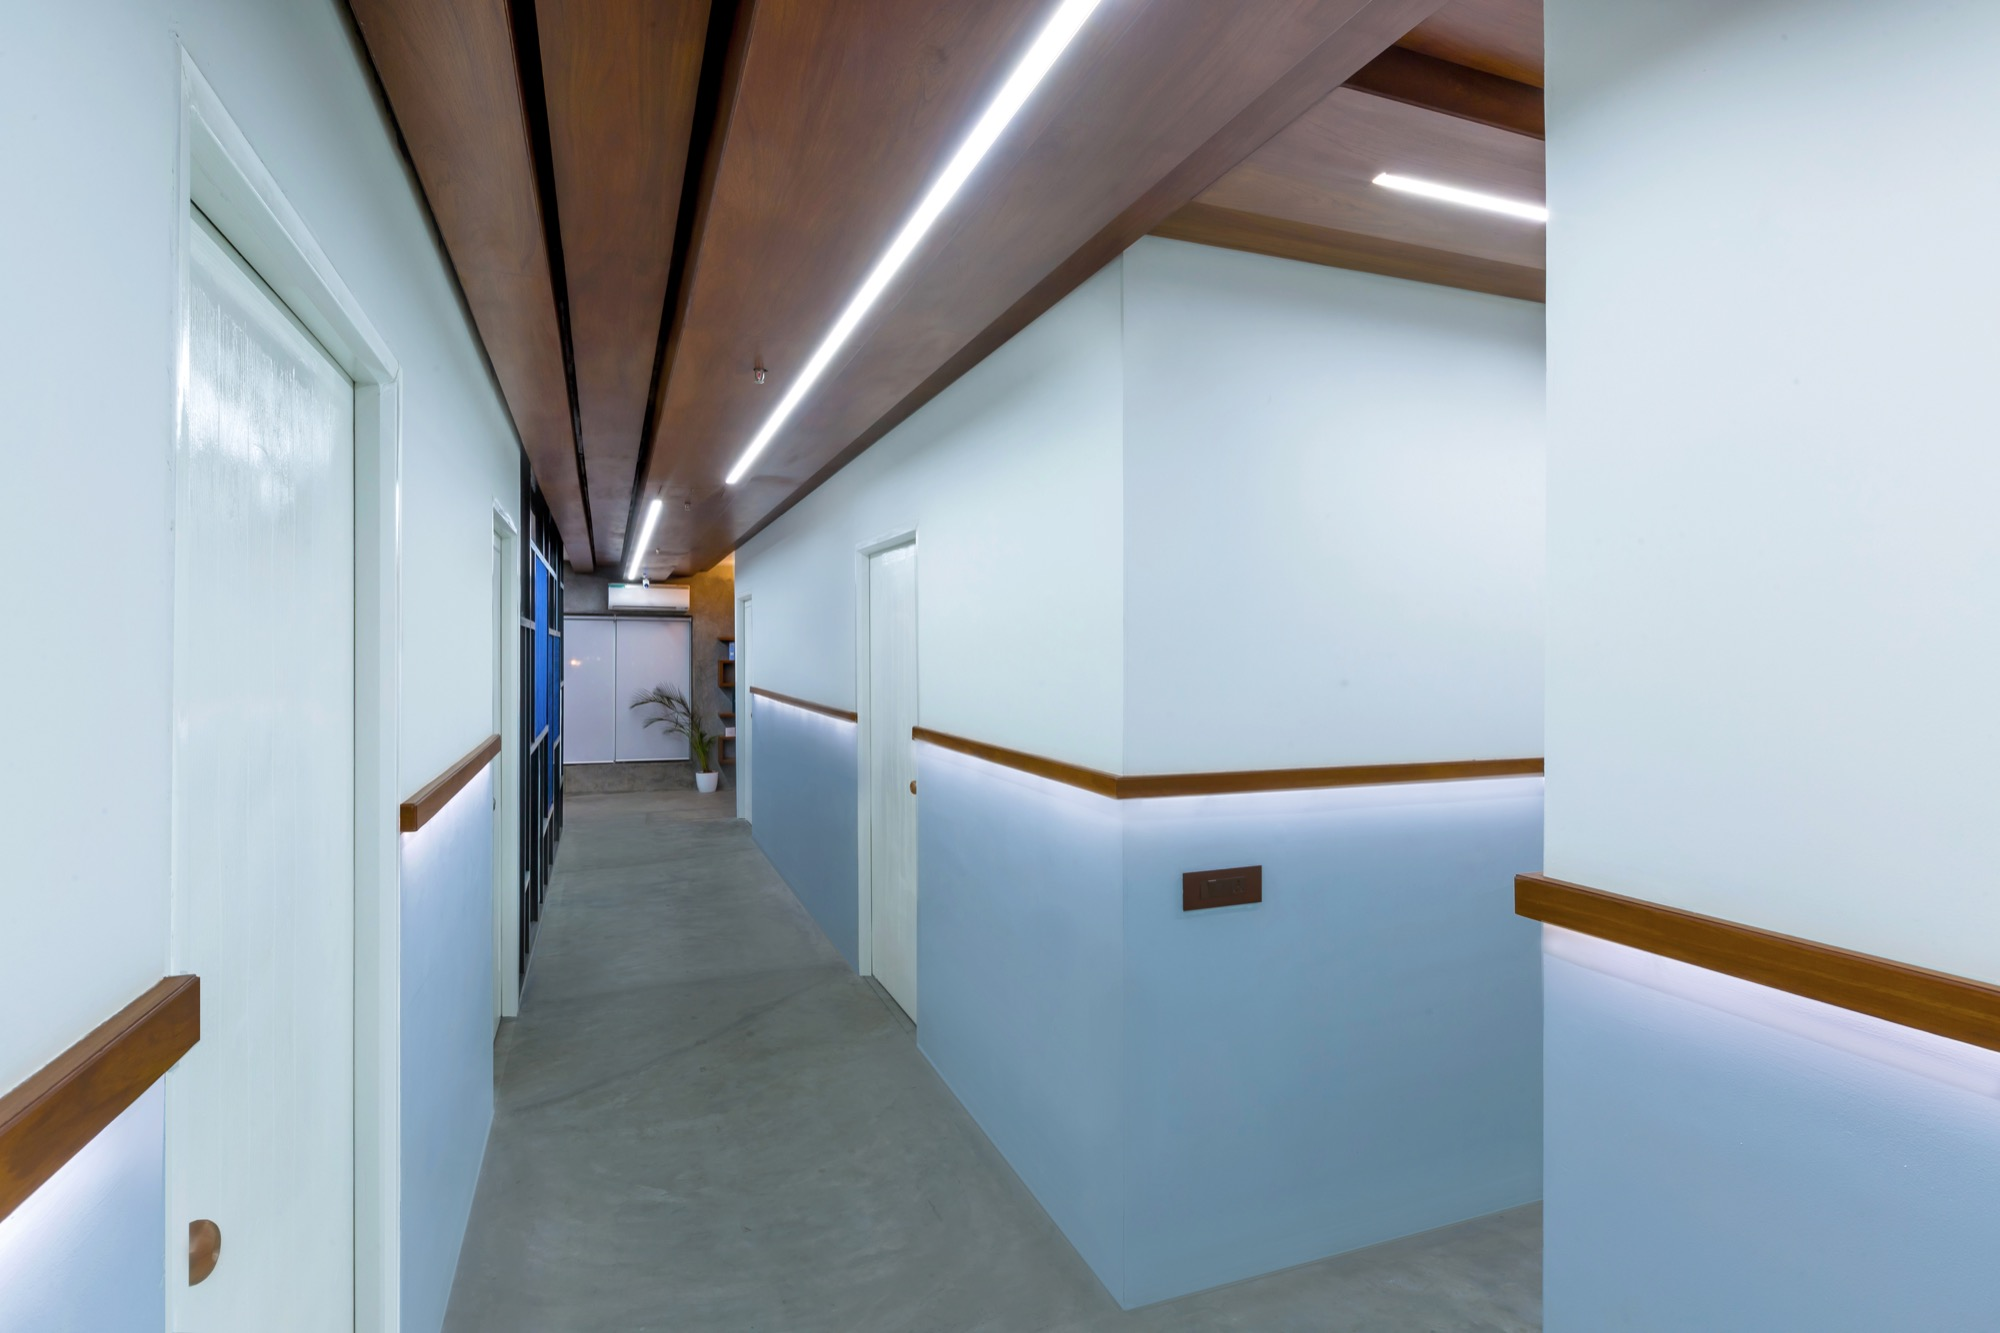 Nava Clinic at Hyderabad, An Earthy Oasis of Wellness, designed by Beyond Spaces Design Studio 30